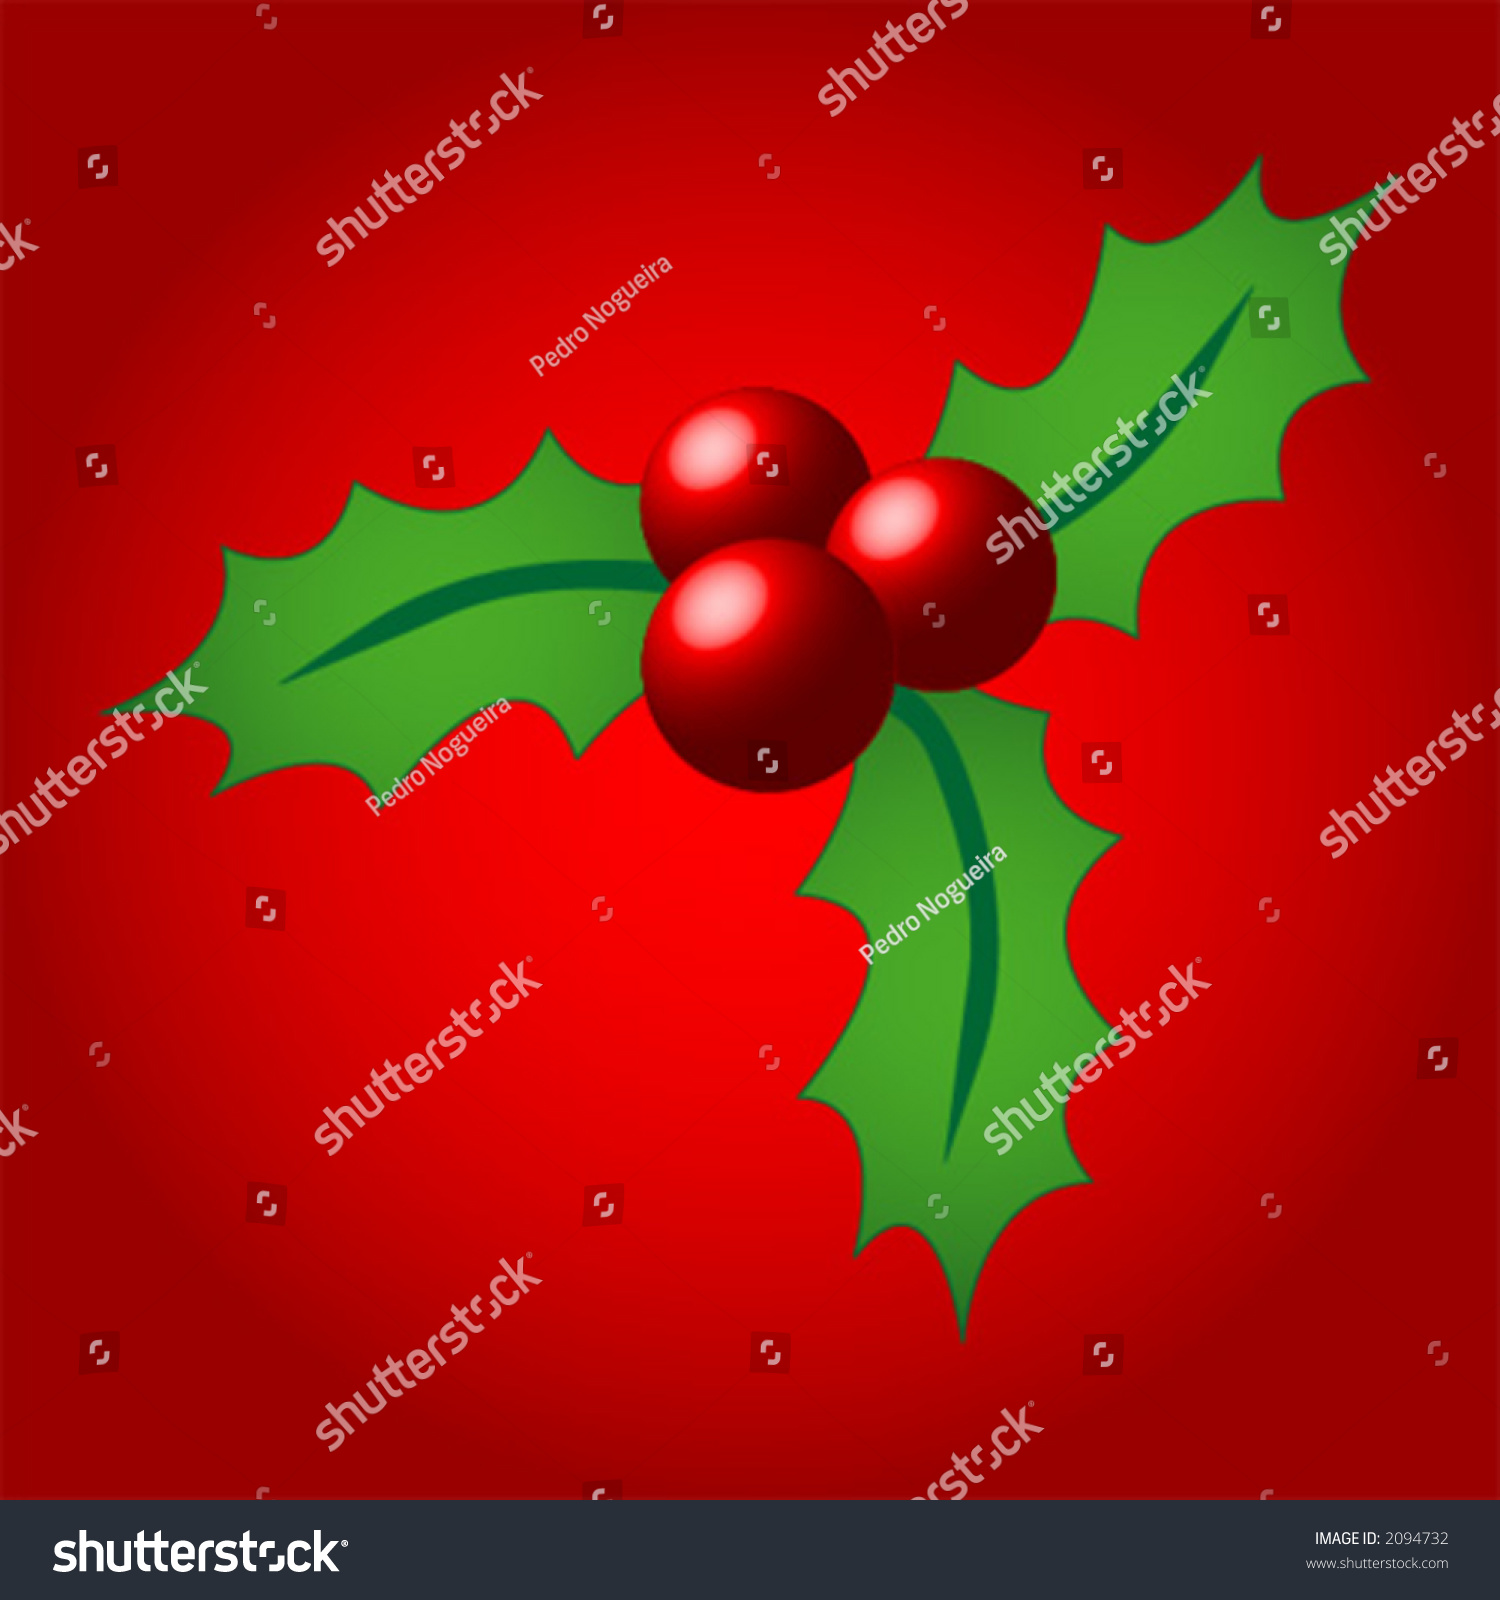 Christmas Holly Over Red Background Stock Vector 2094732 - Shutterstock